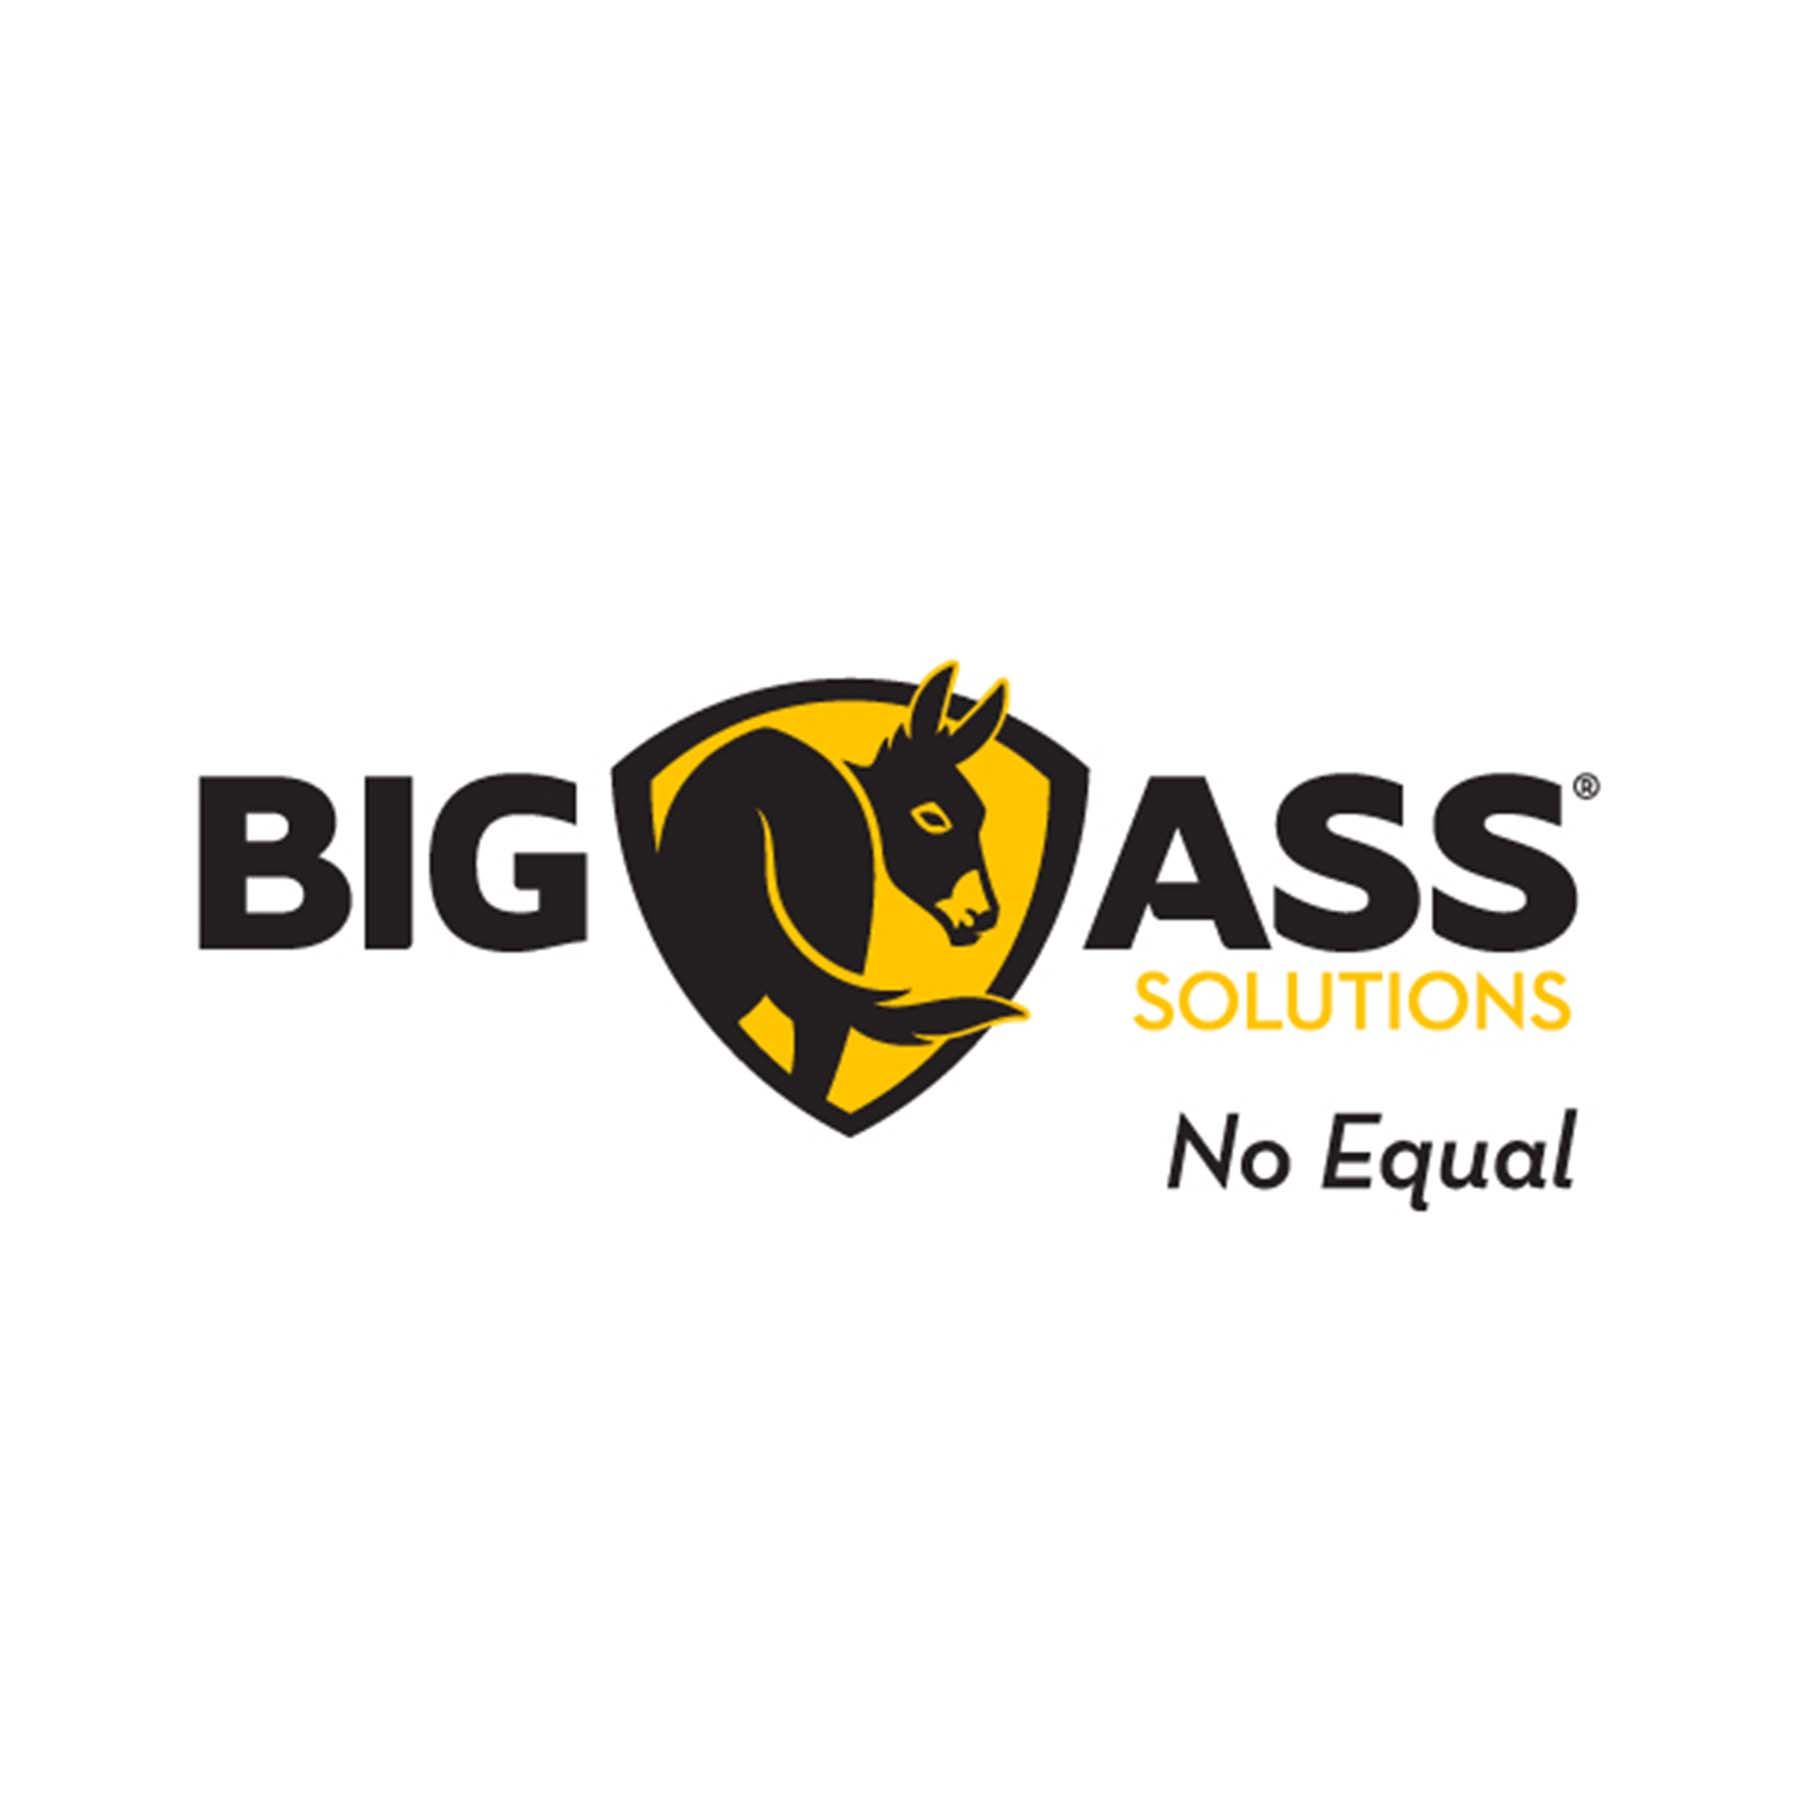 Big ass fan logo